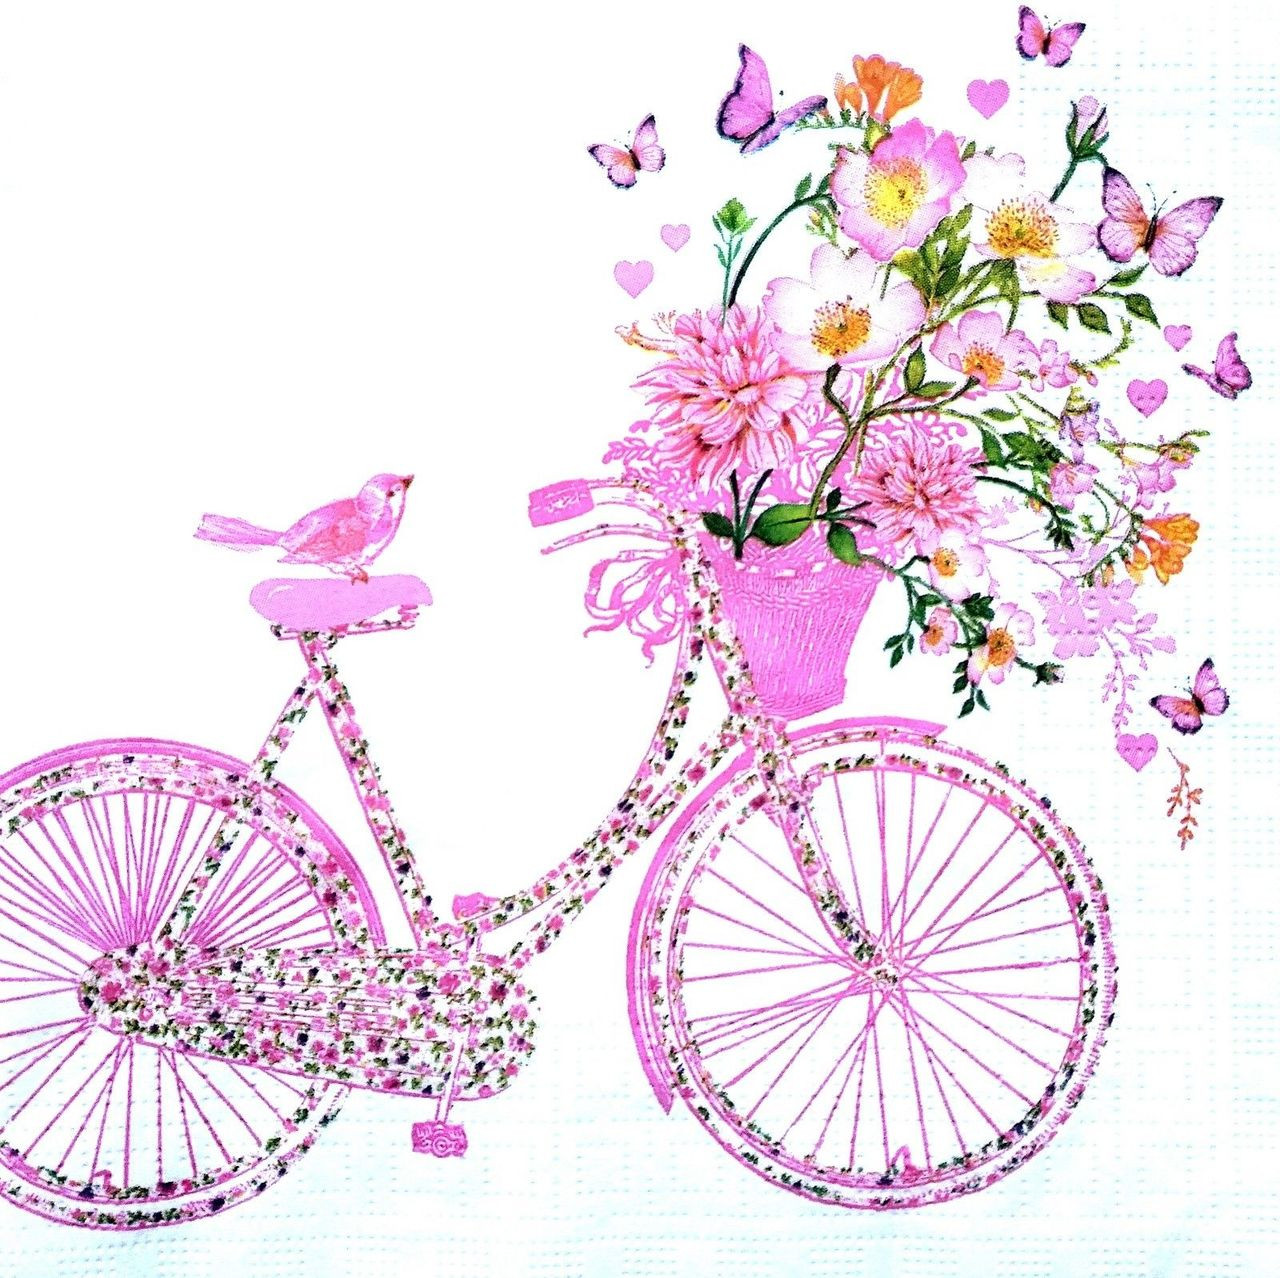 4 Lunch Paper Napkins for Decoupage Party Table Vintage Happy Bike Pink